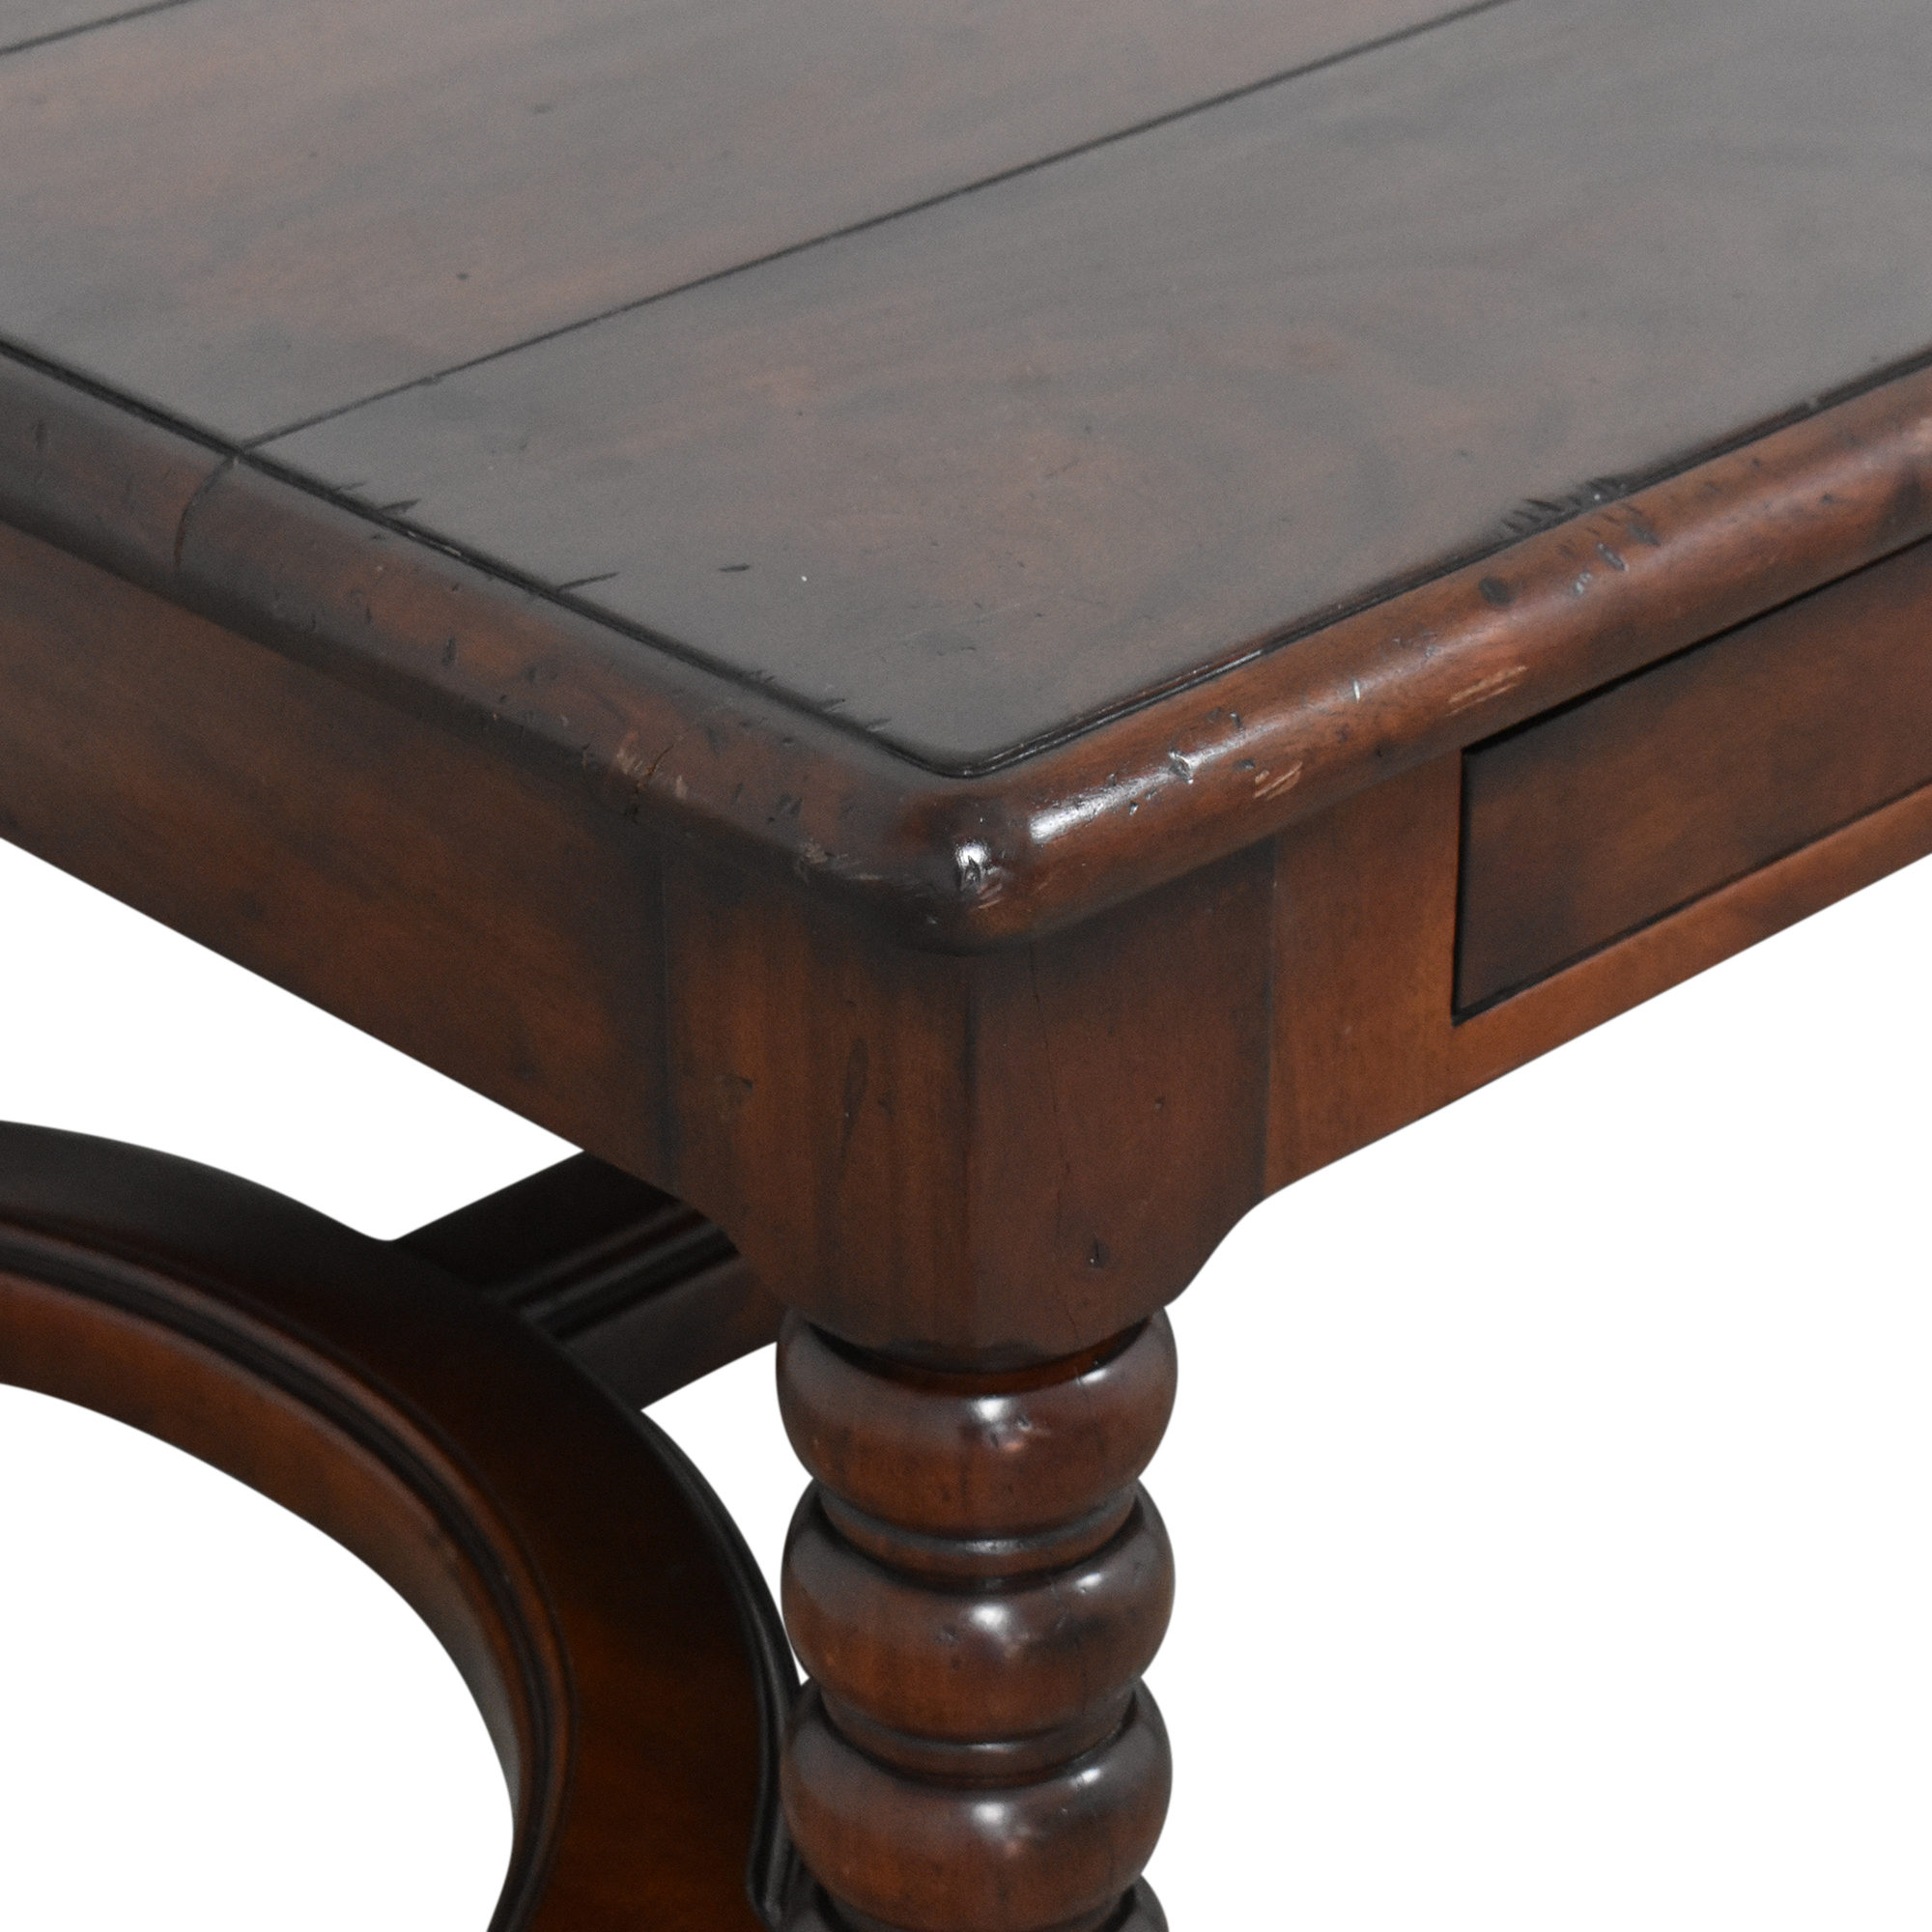 Four Drawer Storage Coffee Table for sale